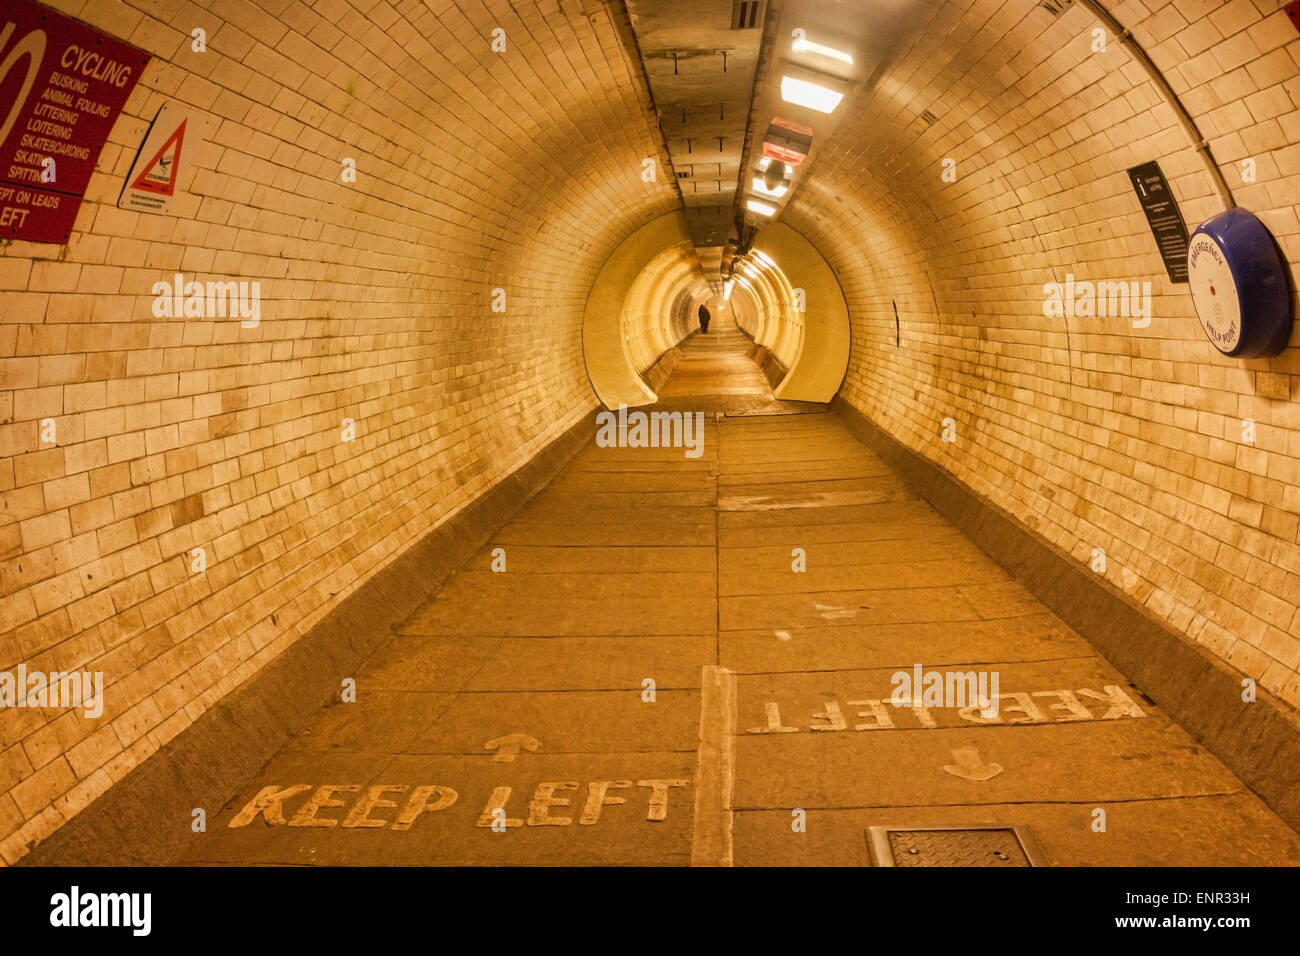 Greenwich Foot Tunnel, London, England, UK. Goes under the River Thames at Greenwich. - Stock Image